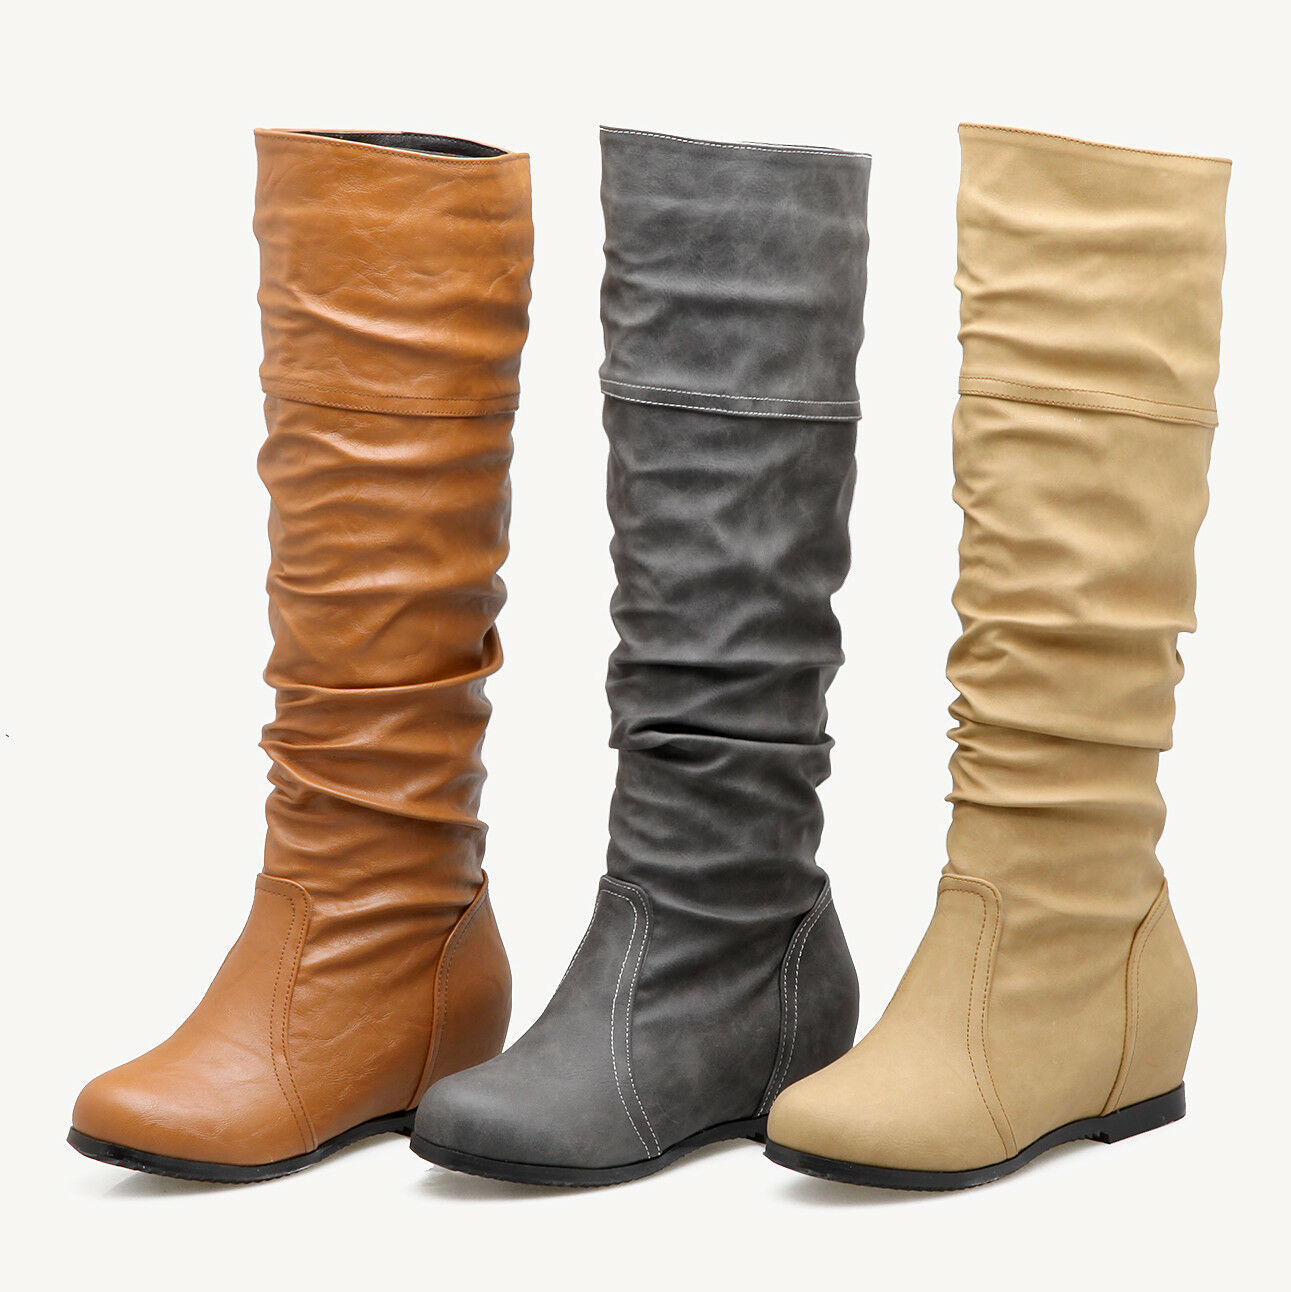 Ladies Faux Leather Knee High Boots Round Toe Wedge Heel shoes Plus Size US 216